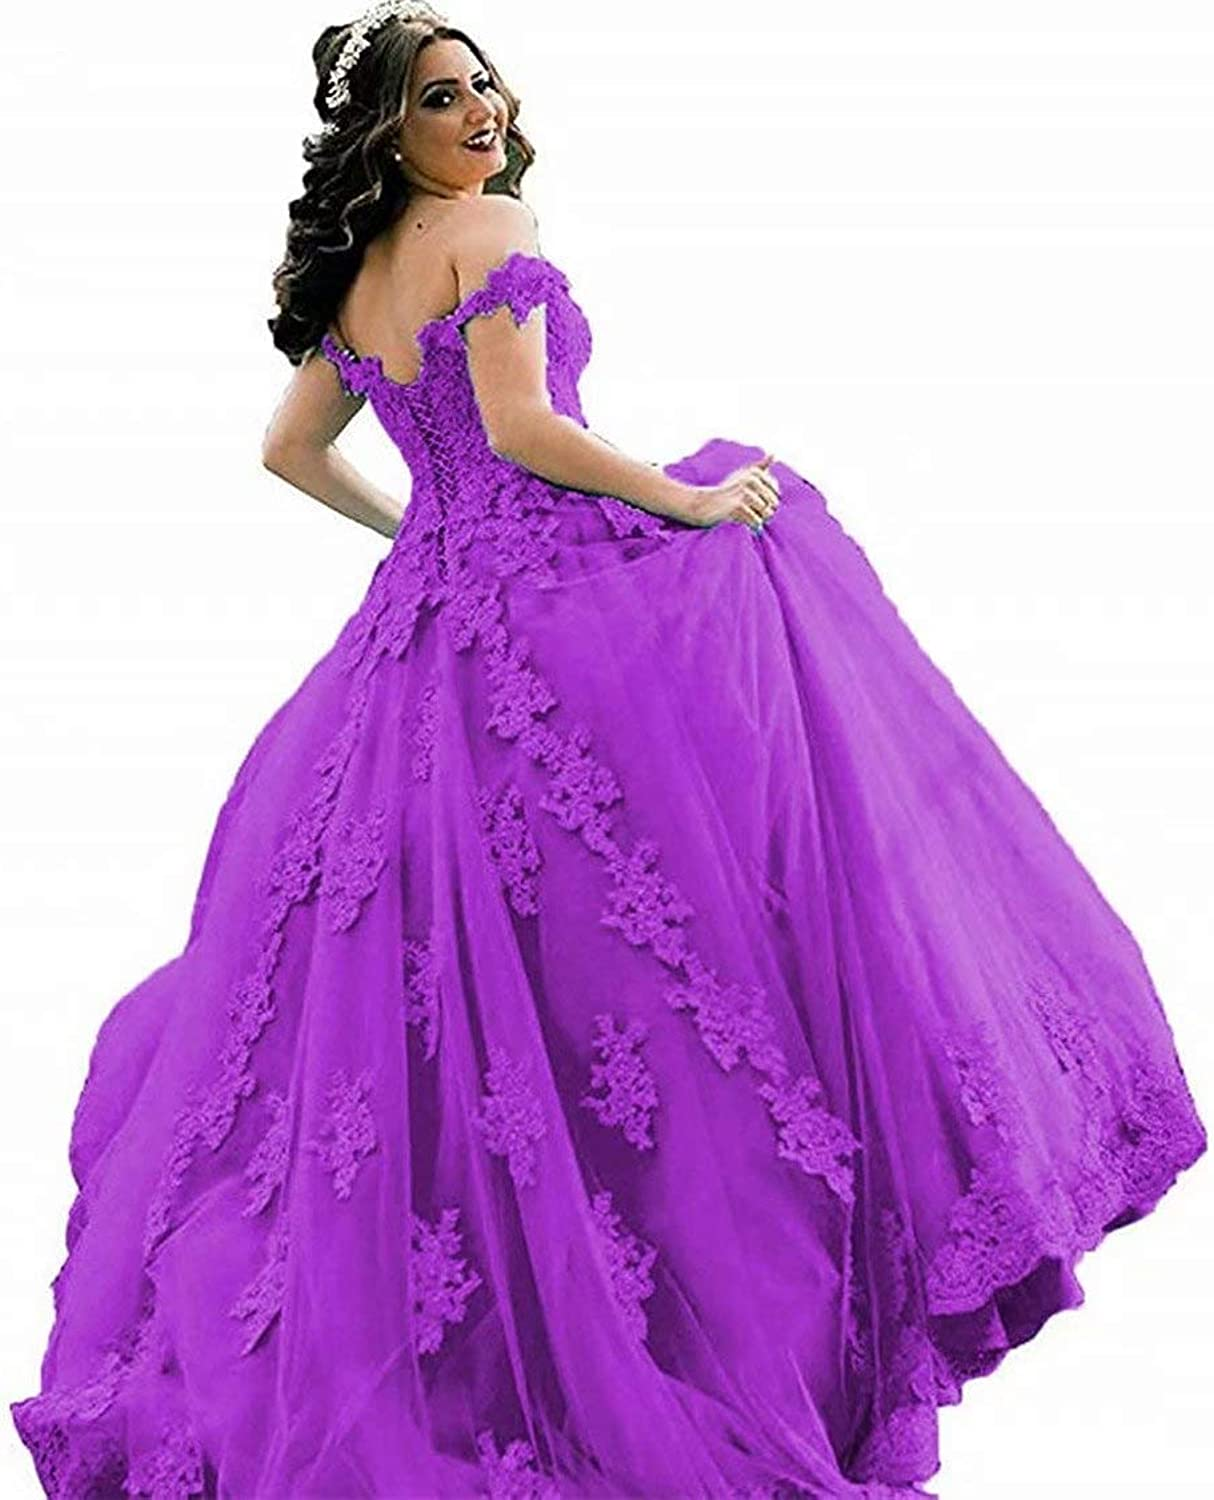 EEFZL Women's Beaded Lace Appliques Prom Evening Dresses Off Shoulder Evening Ball Gowns Wedding Quinceanera Dresses